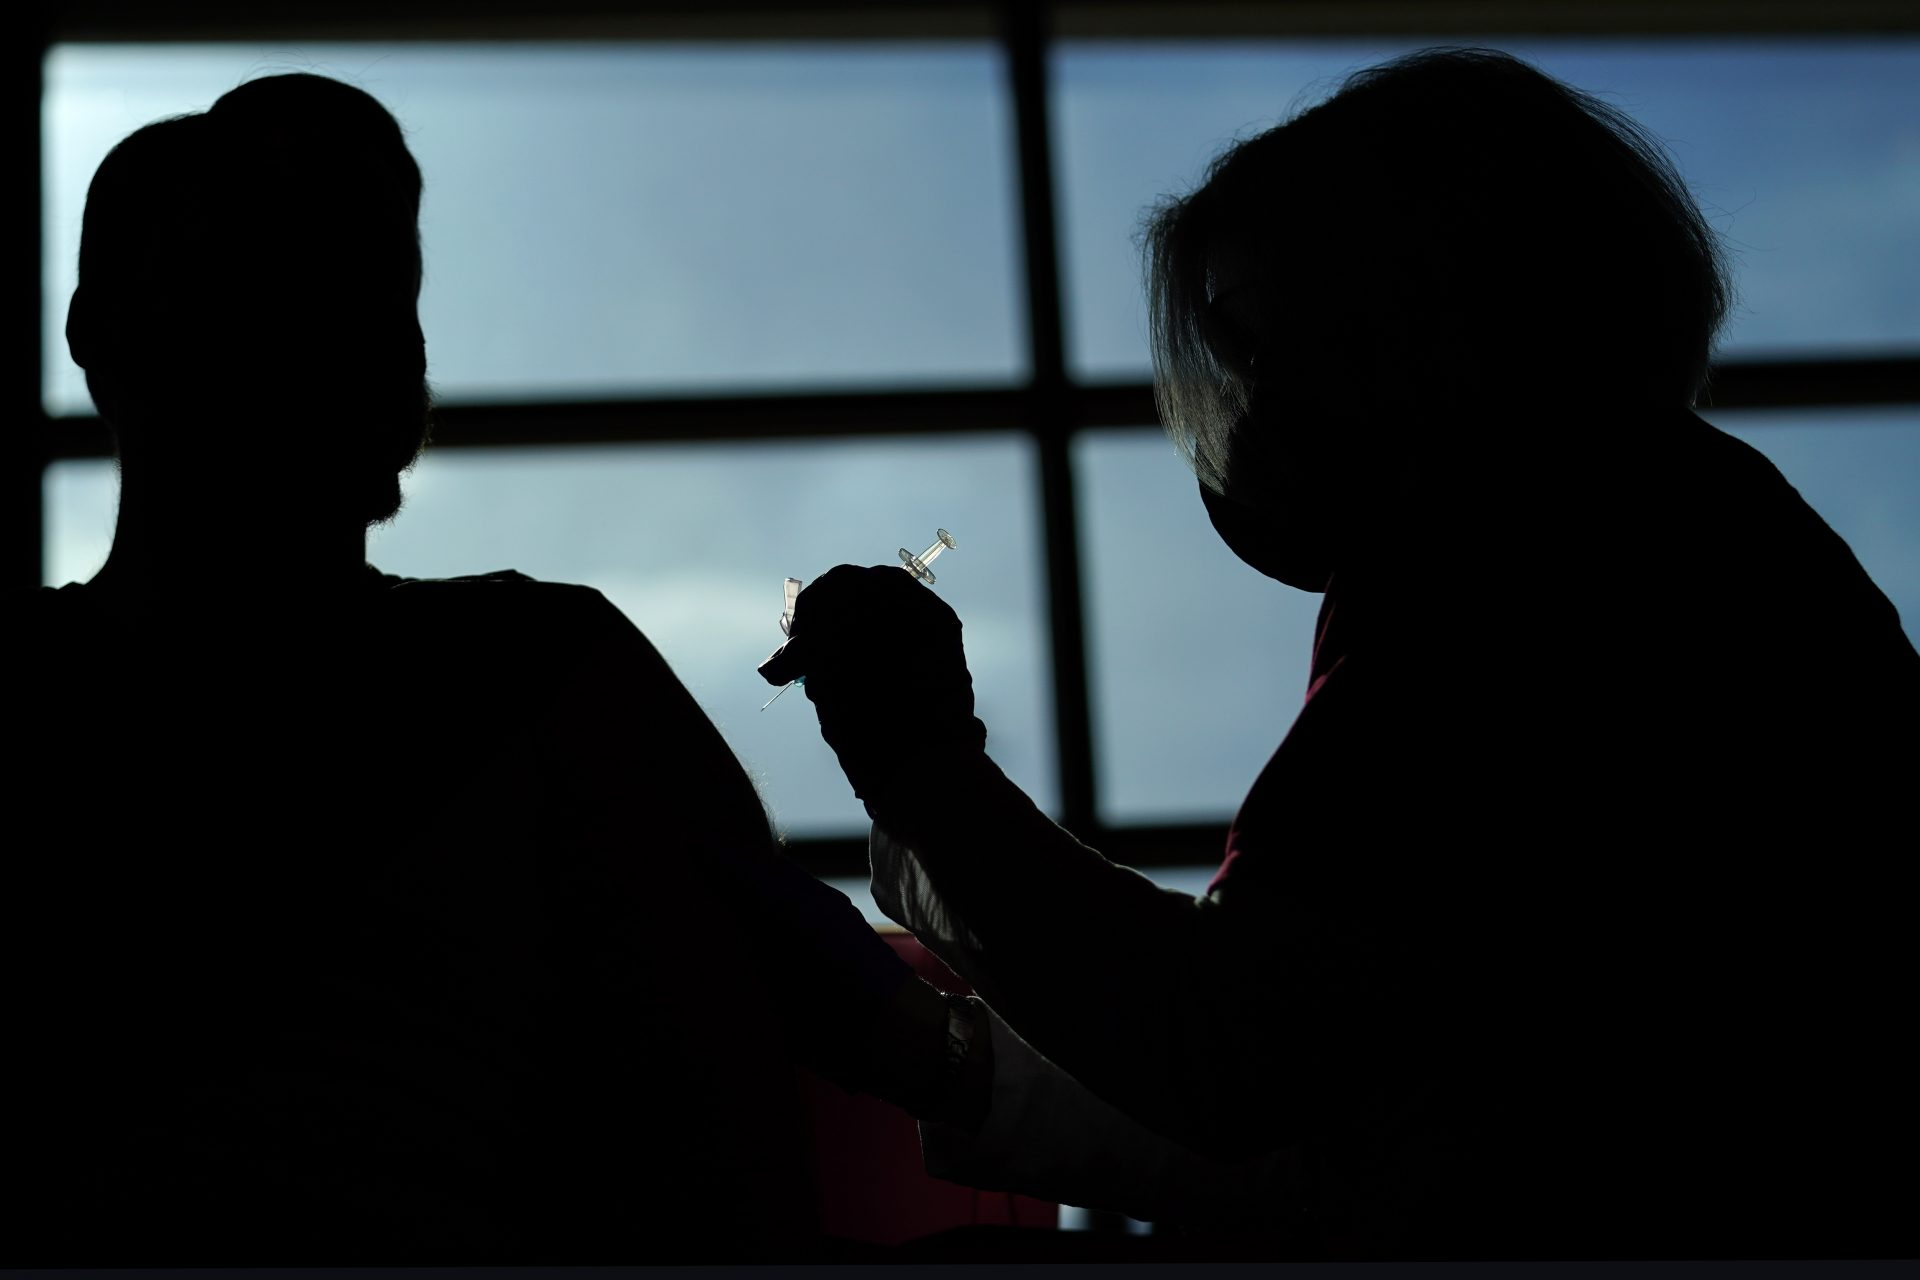 Philadelphia Flyers ice crew member Ryan DiFilipo, left, receives a Johnson & Johnson COVID-19 vaccination from nurse practitioner Erin McMenamin at the Wells Fargo Center before an NHL hockey game against the New Jersey Devils, Monday, May 10, 2021, in Philadelphia.